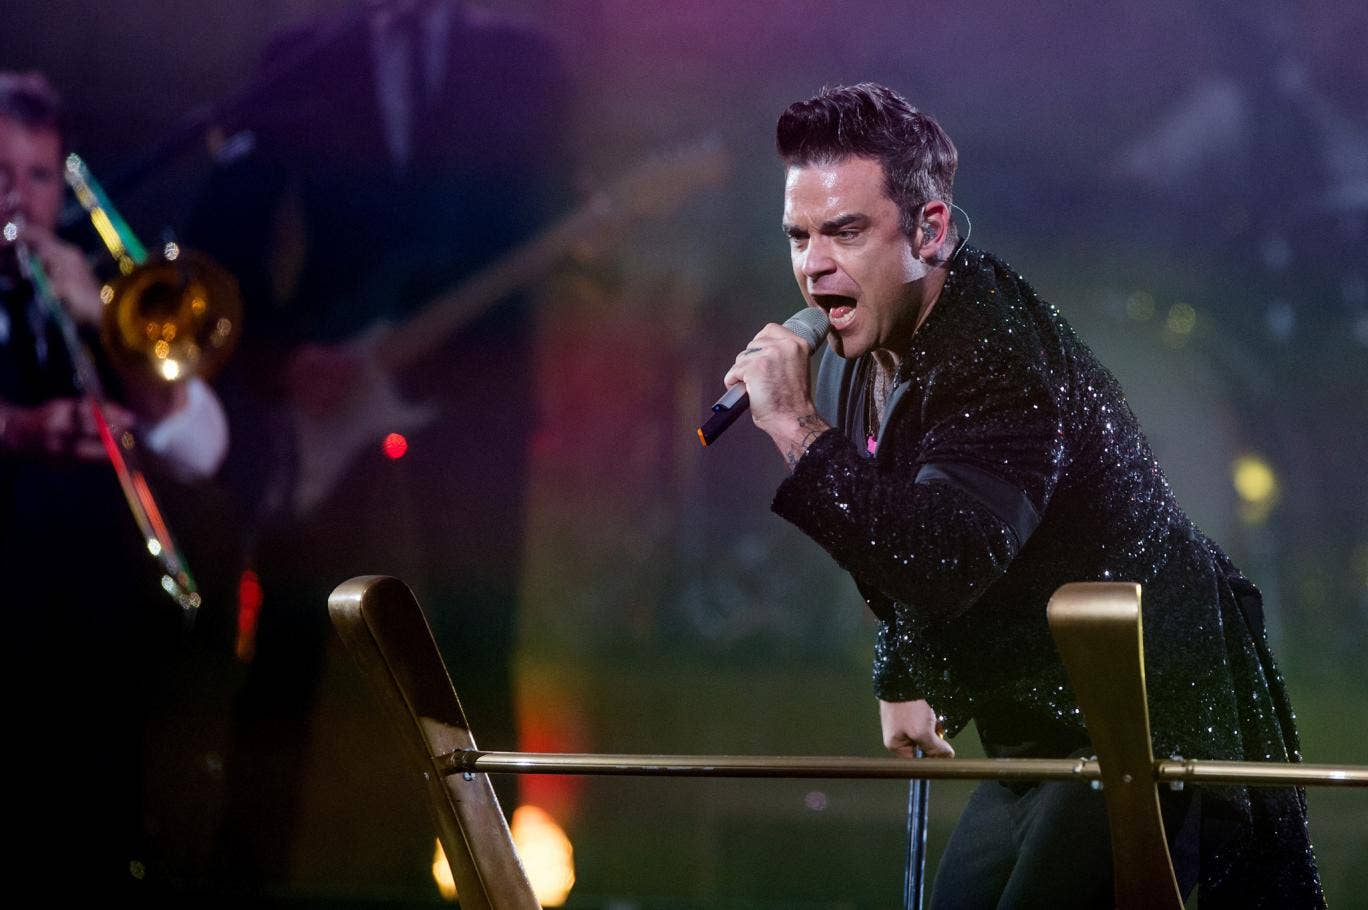 Robbie Williams performs in Amsterdam as part of his 'Take the Crown' tour 2013